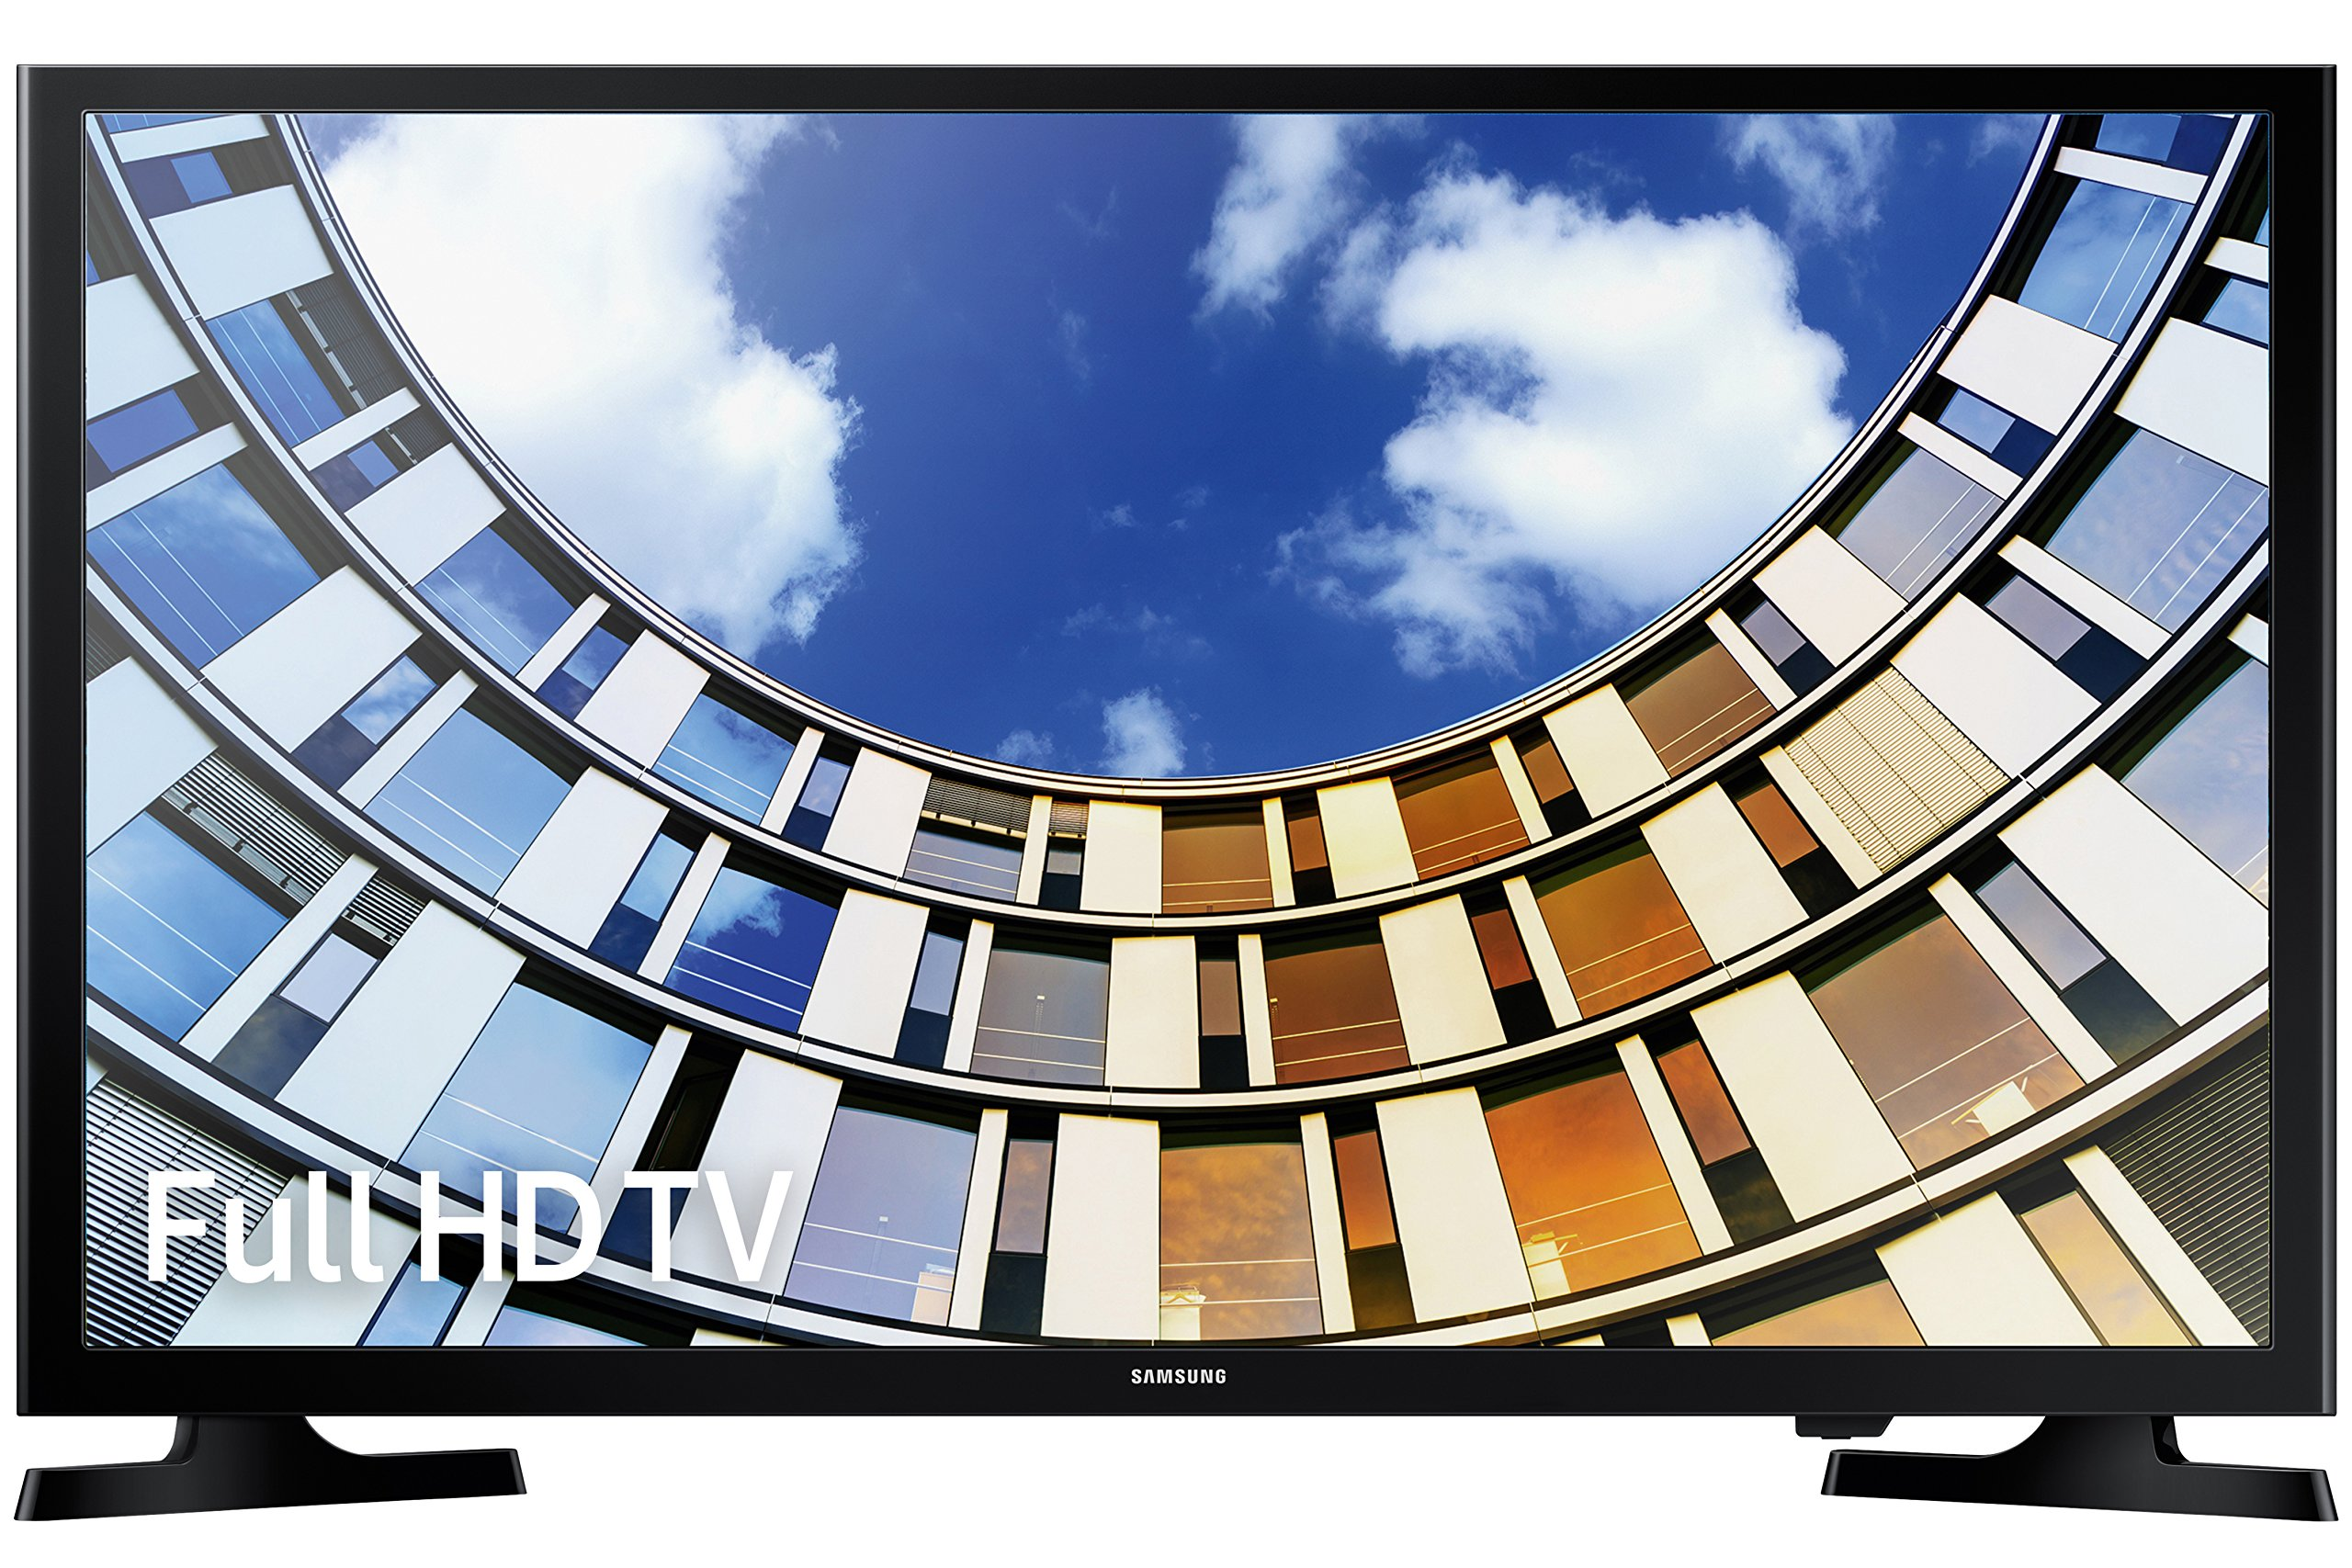 Samsung M5000 32-Inch Full HD Ready TV | eBay